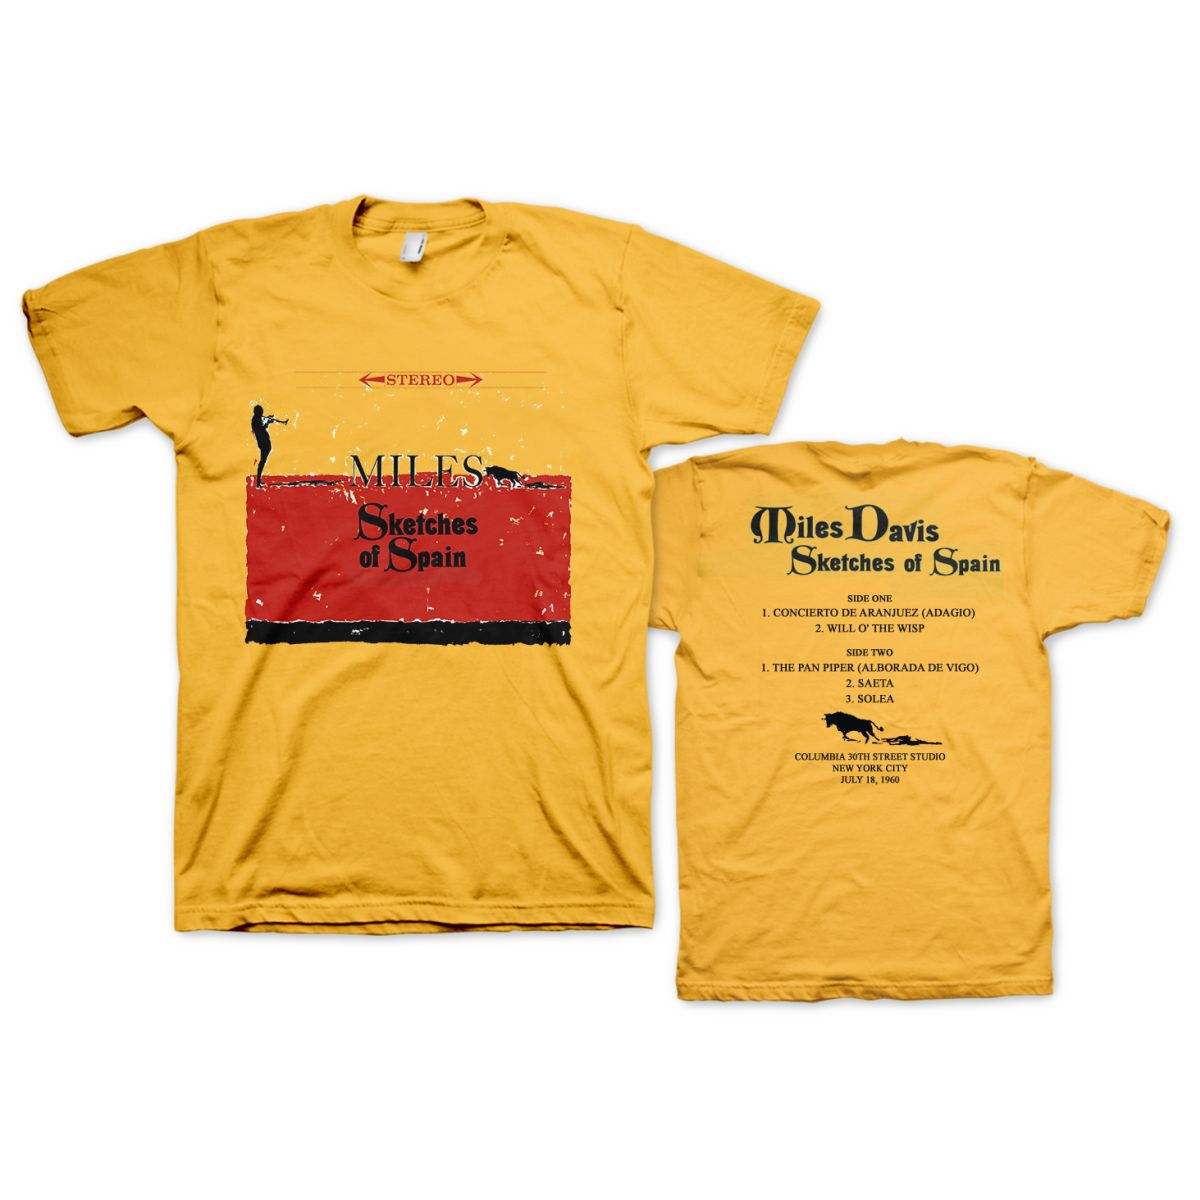 Miles Davis Sketches of Spain T-shirt